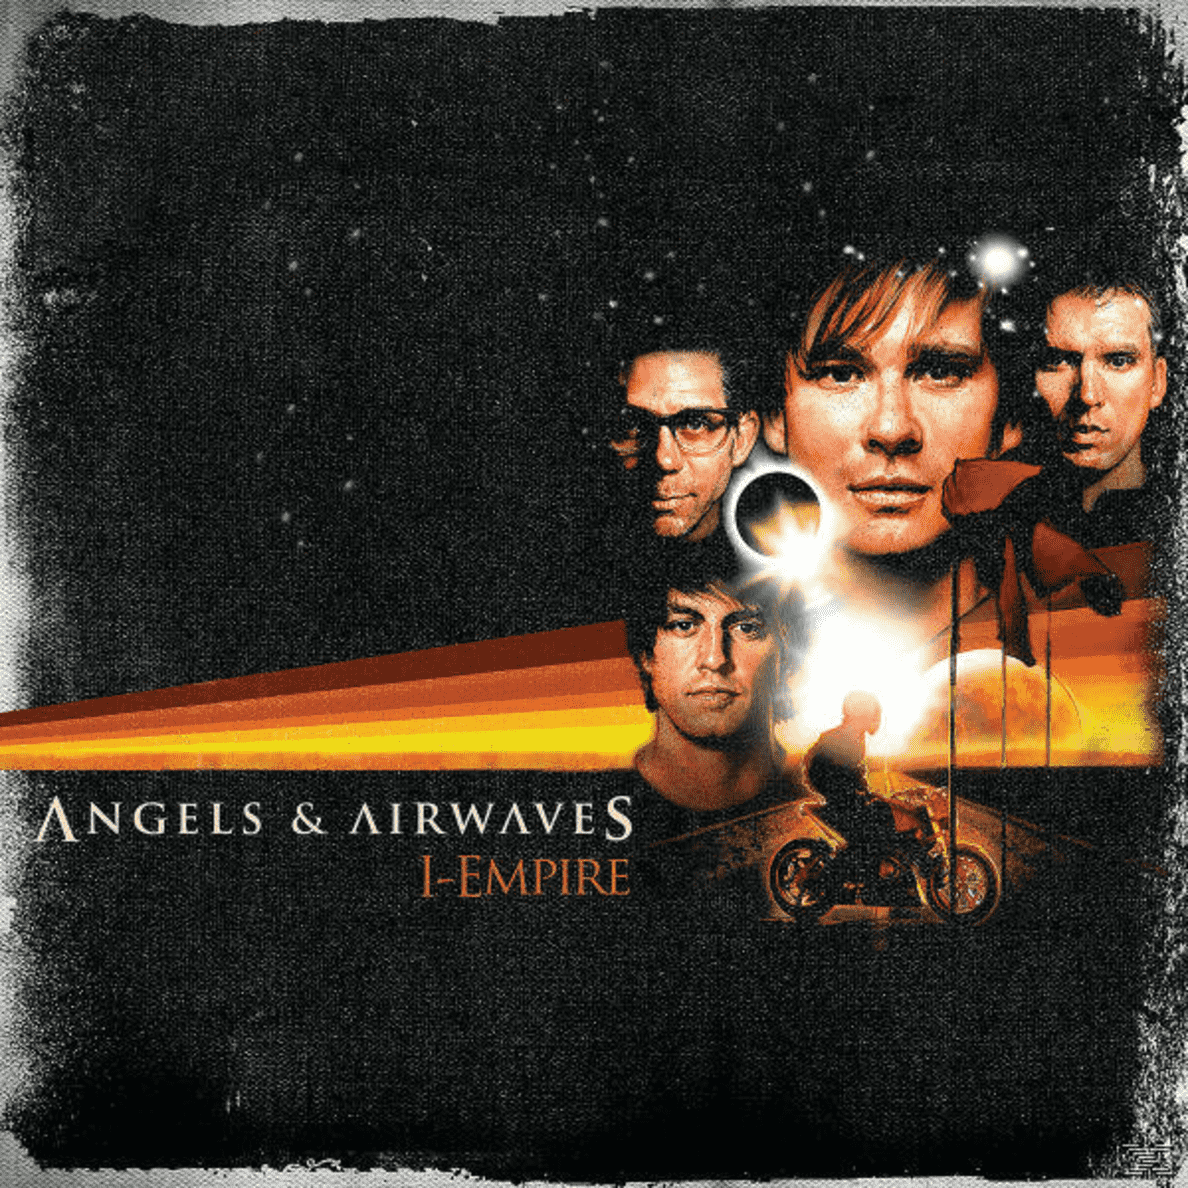 I-Empire Angels And Airwaves auf CD